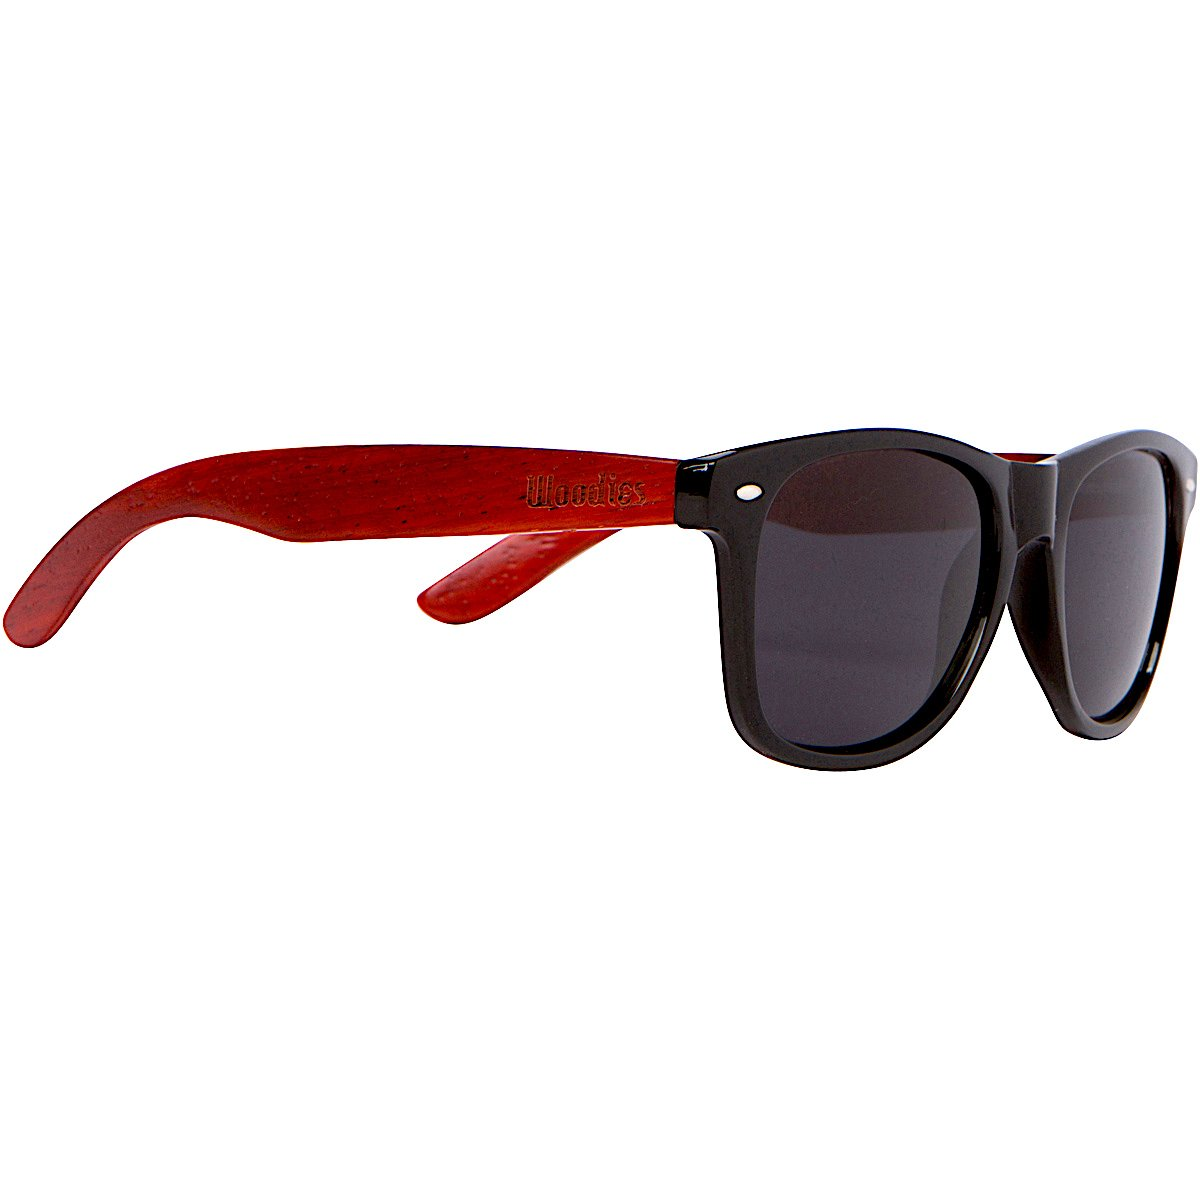 WOODIES Rose Wood Sunglasses with Polarized Lenses